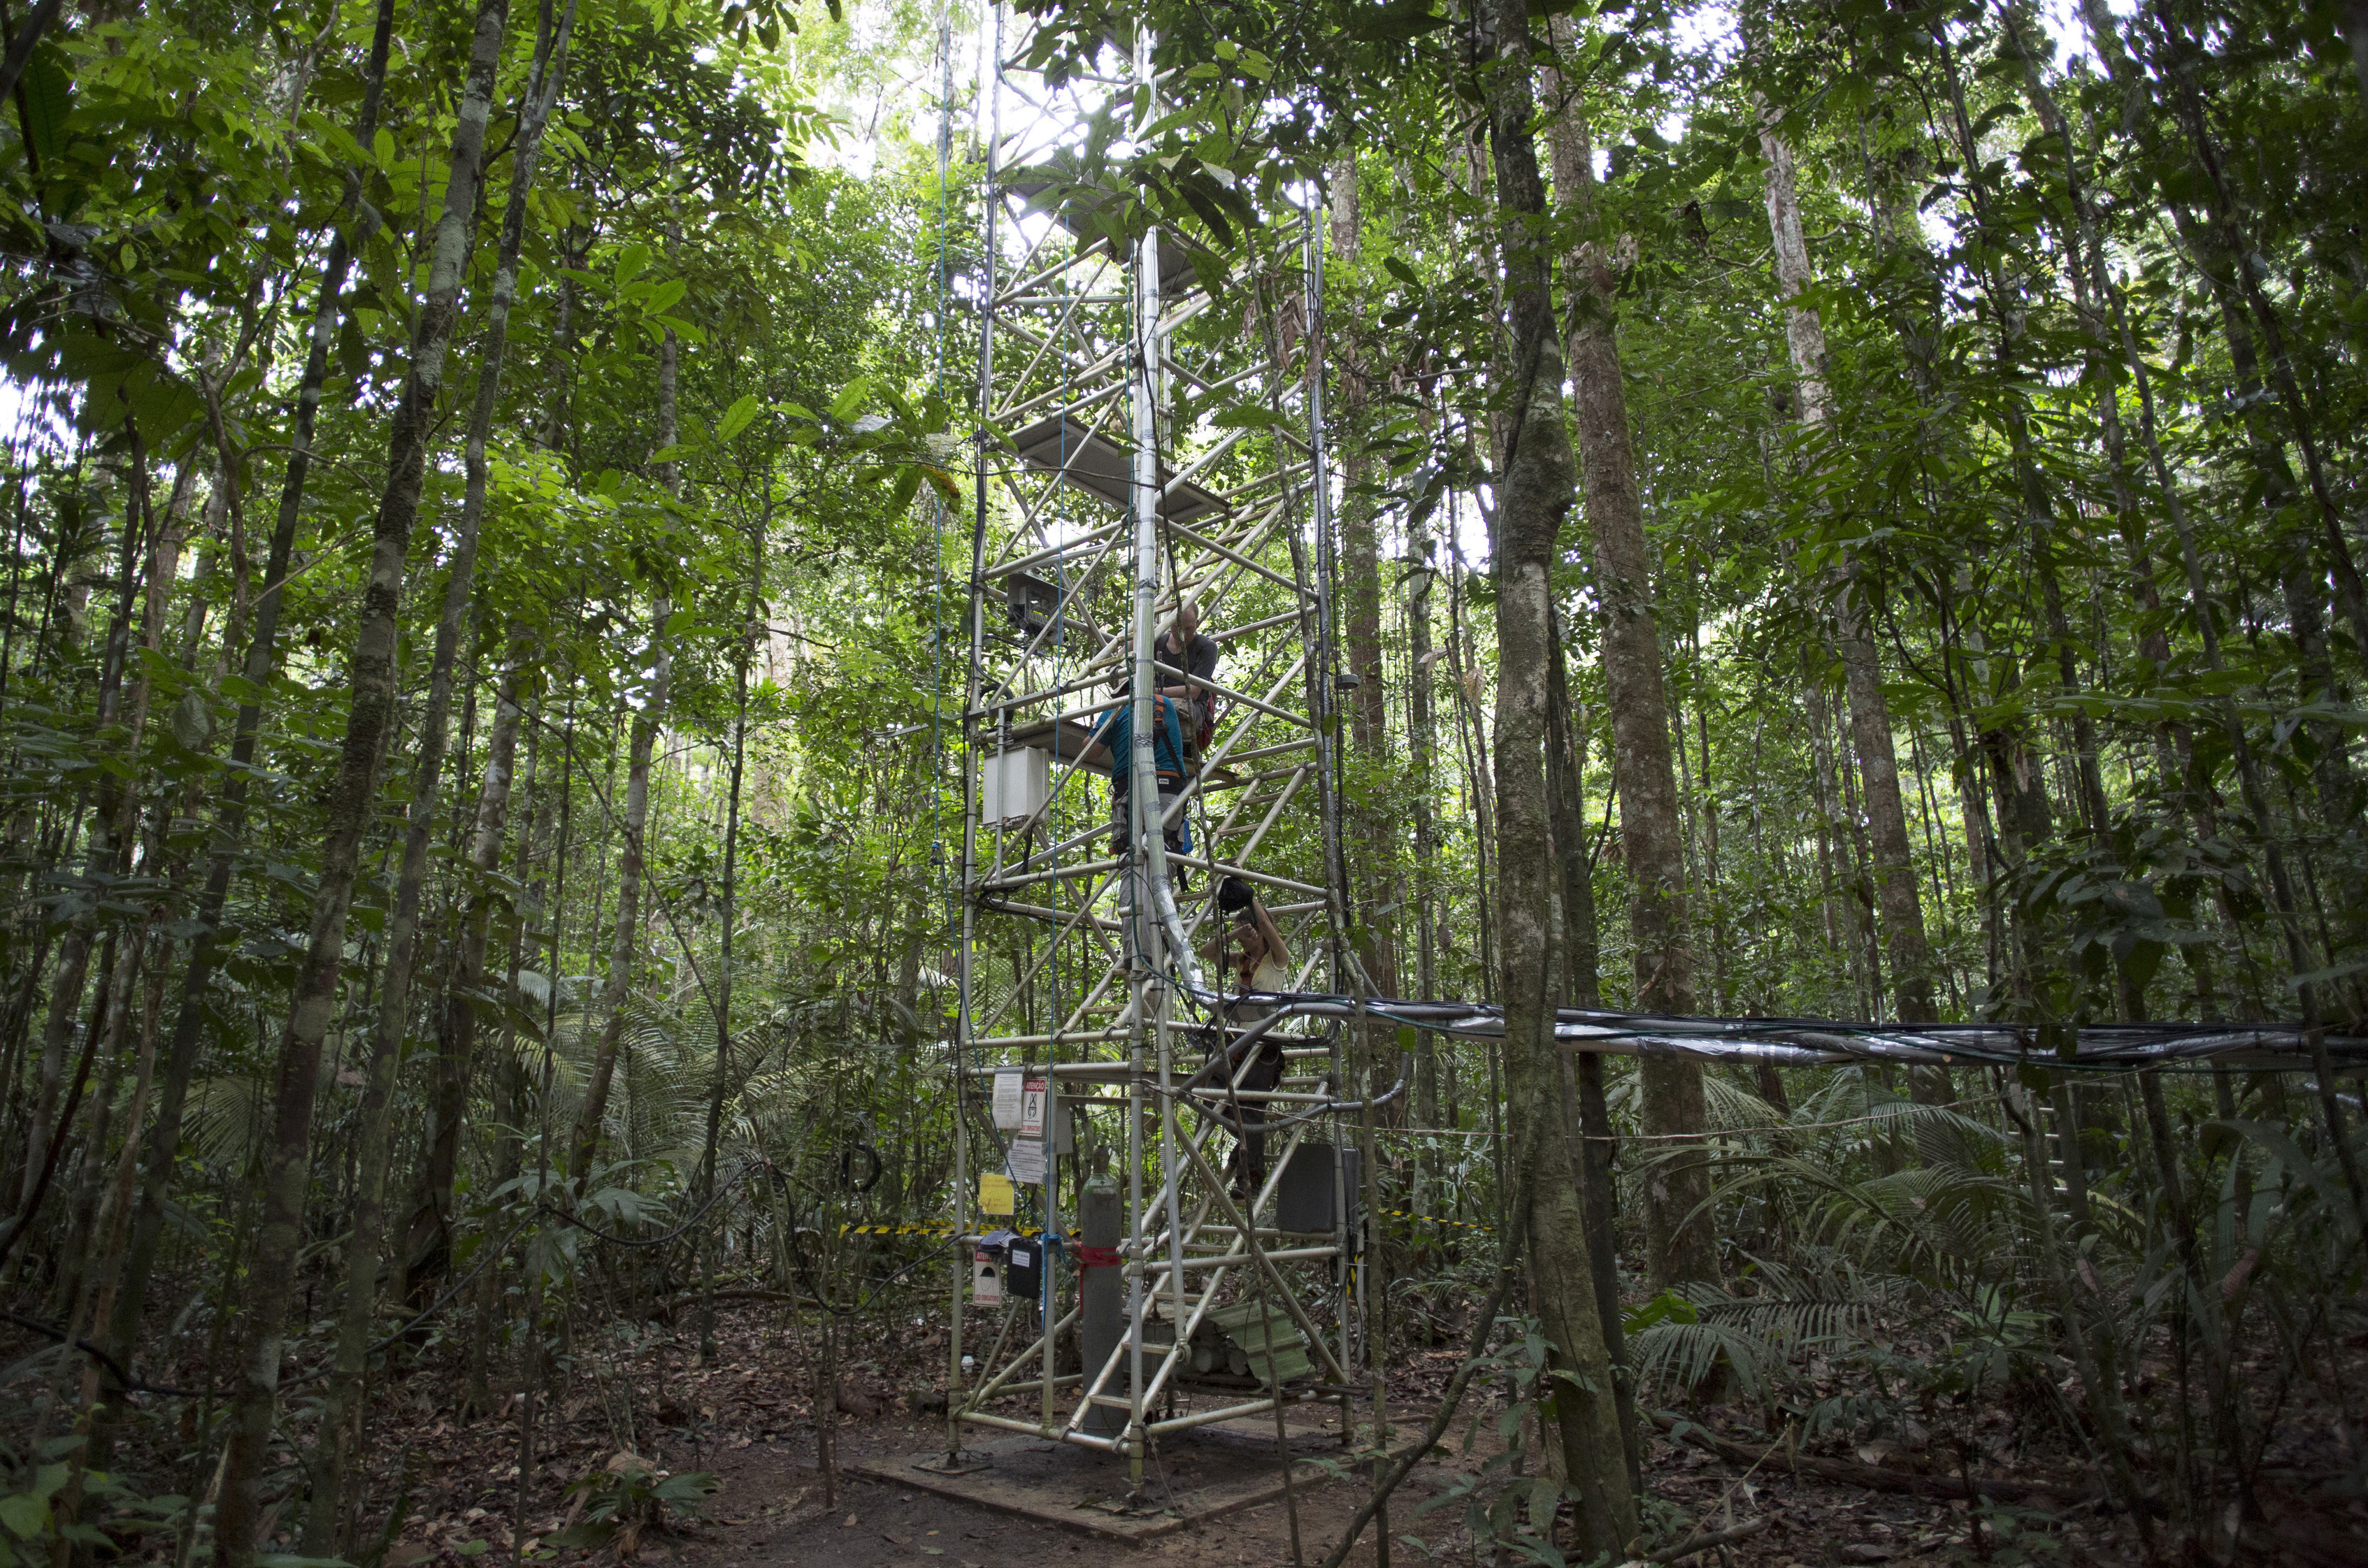 Researchers go up the Amazon Tall Tower Observatory (ATTO) in Sao Sebastiao do Uatuma in the middle of the Amazon forest in Amazonas state January 9, 2015. Photo by Bruno Kelly/Reuters